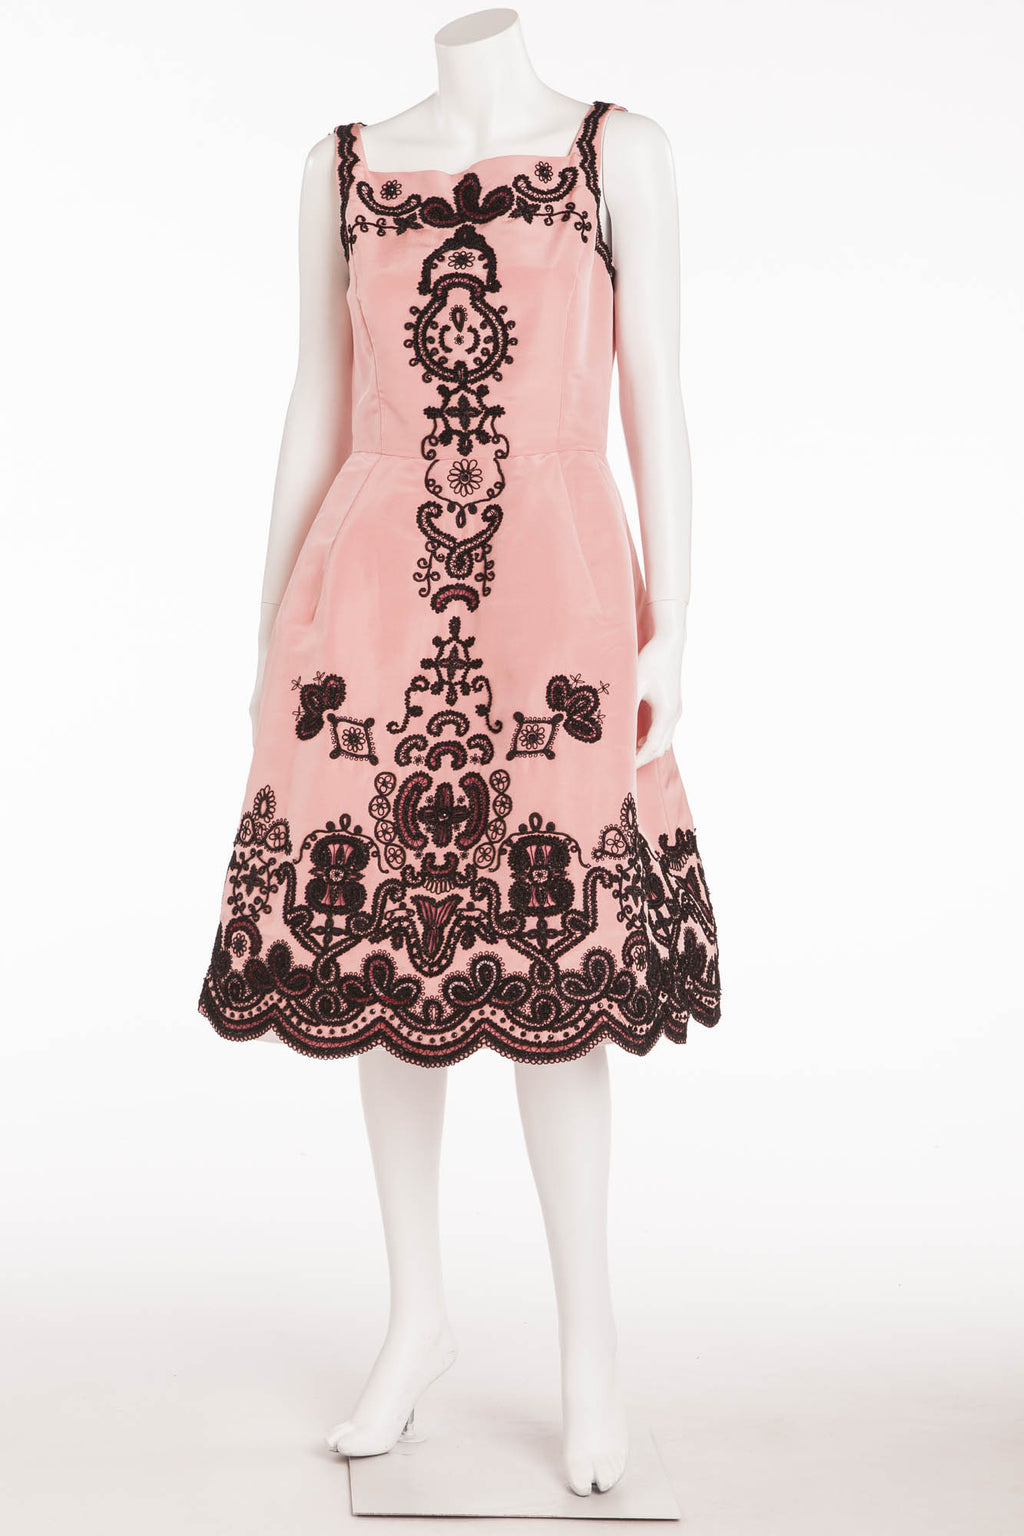 Oscar De La Renta - Pink Sleeveless Dress with Black Embellishments - US 8